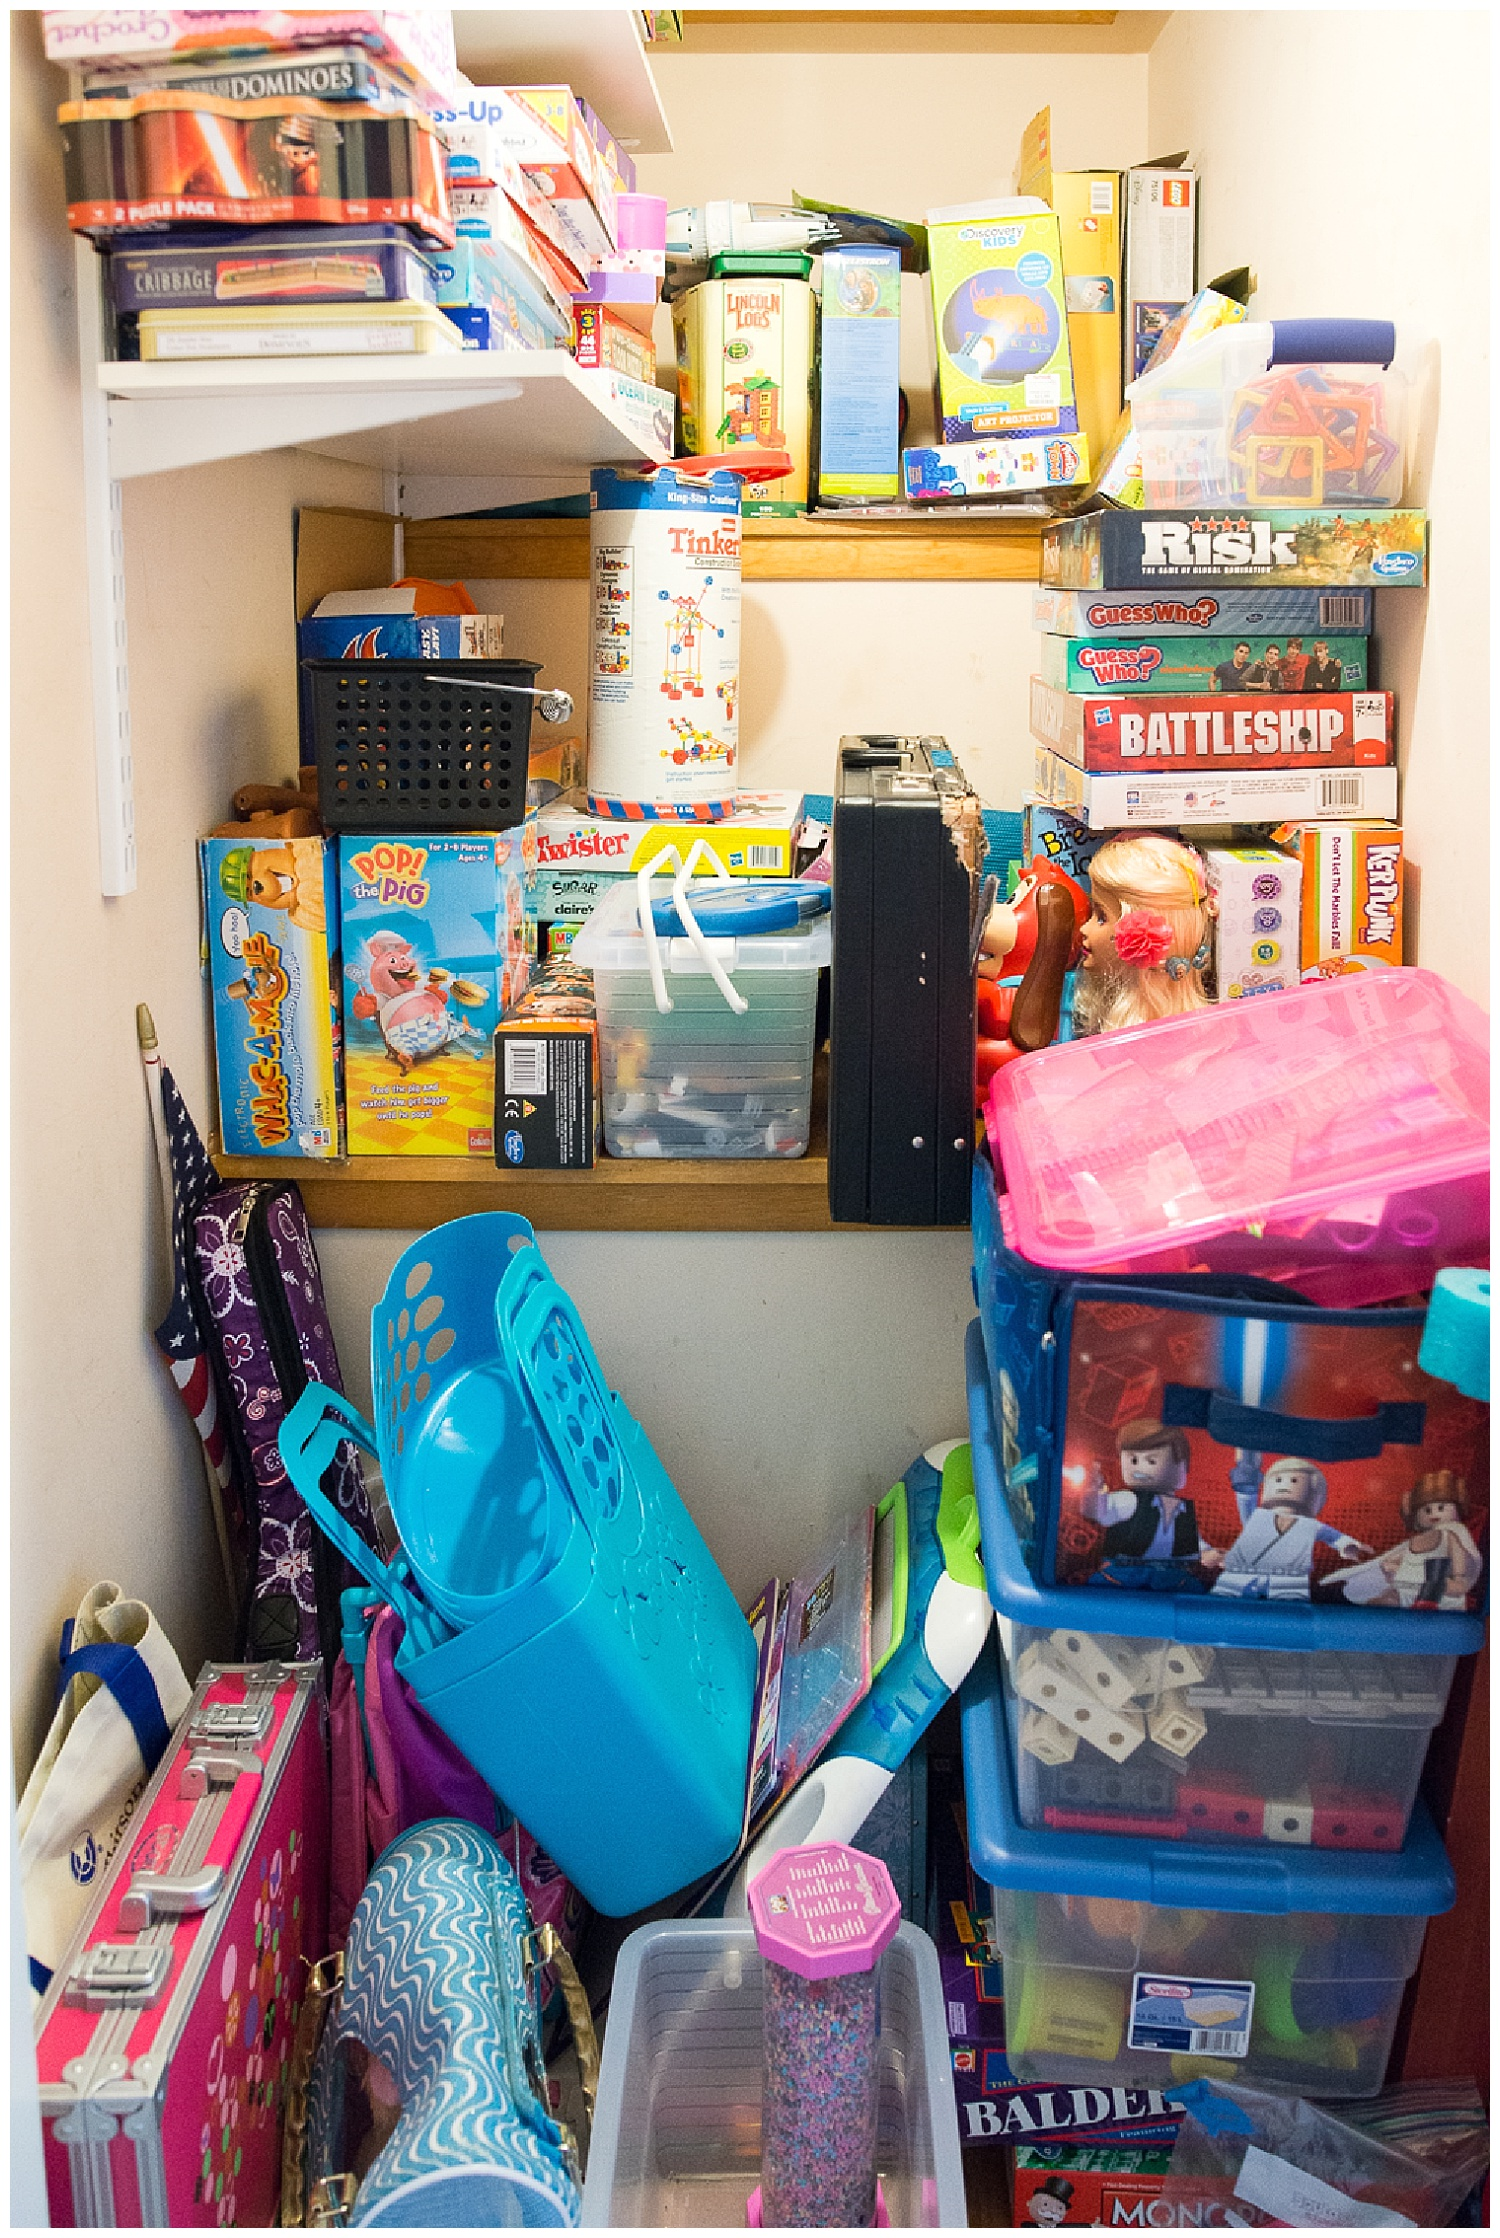 I love peeking into people's closets. This stairwell leading up to the attic is the perfect spot for games, games and more games.